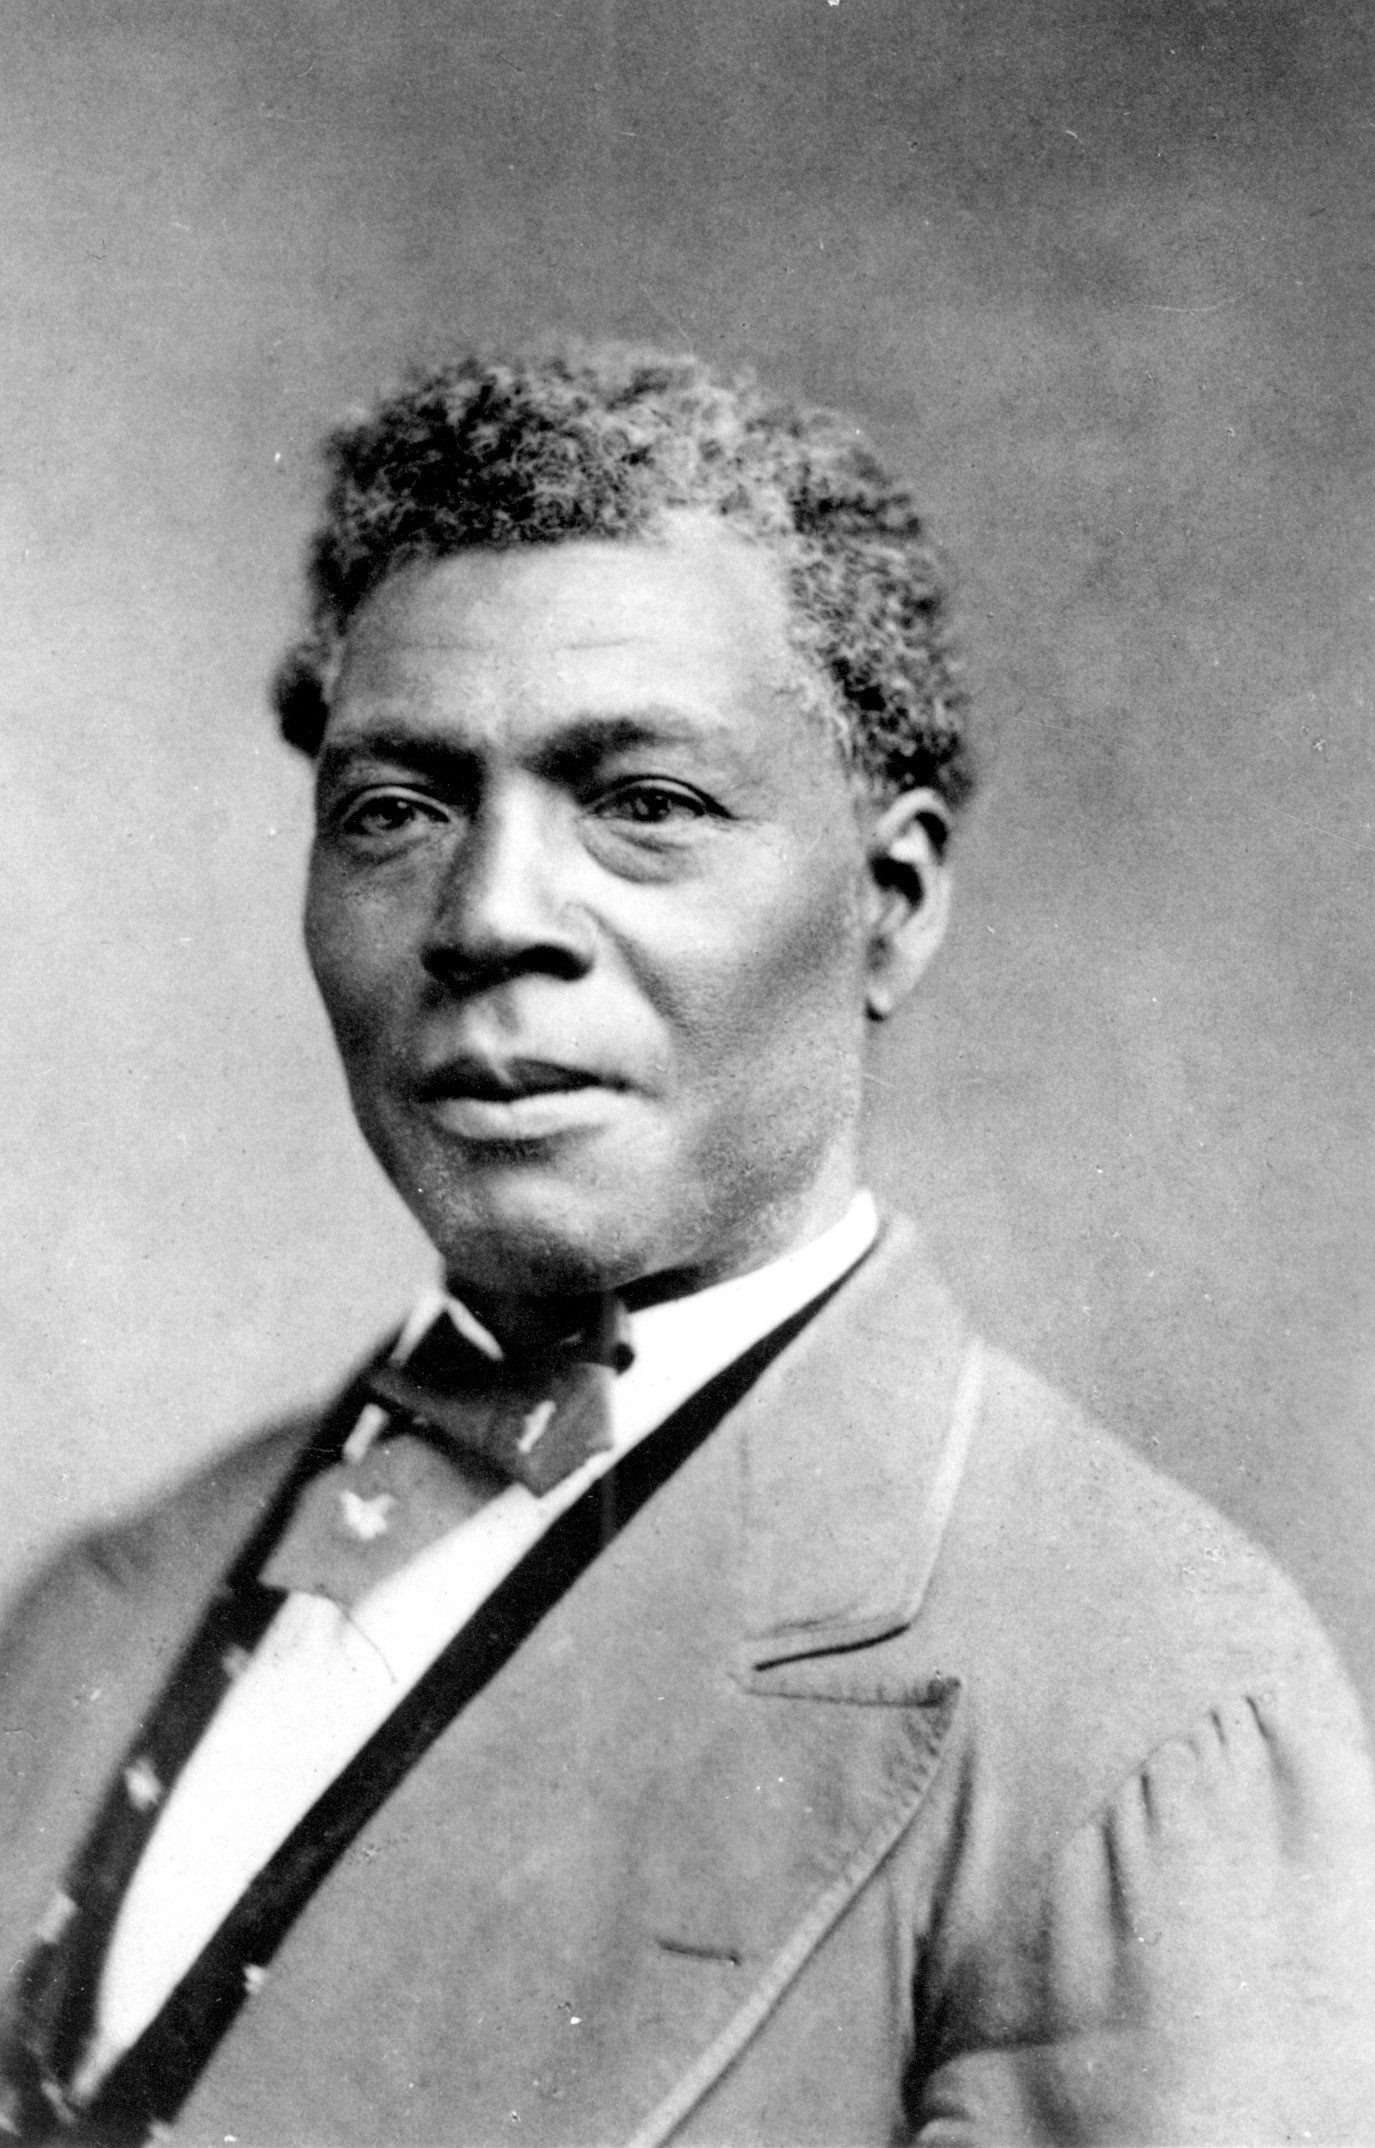 Photograph portrait of Archer Alexander, former slave. Photograph is a copy photo of an earlier work. Alexander is seen from chest up with body and head slightly angled toward the left. He is wearing a light colored jacket with pointed lapel, a dark vest, white shirt, and dark tie.